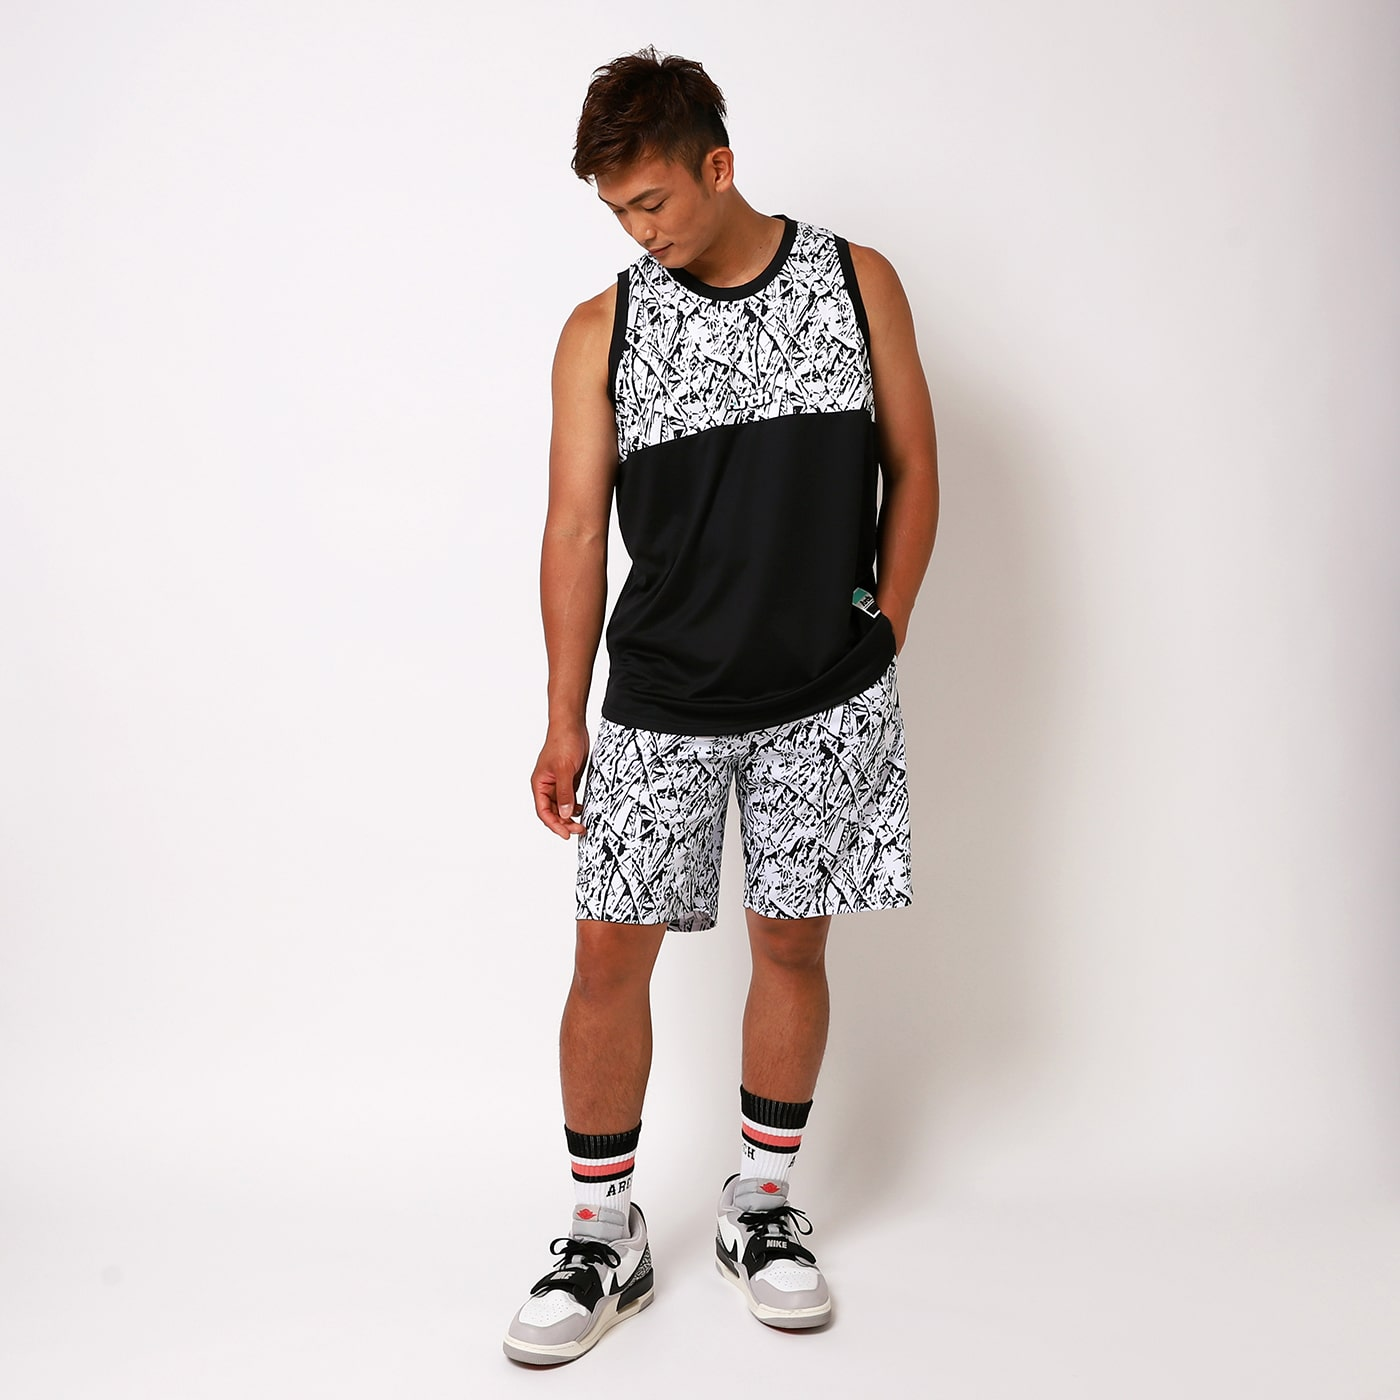 Arch nervure tank and shorts